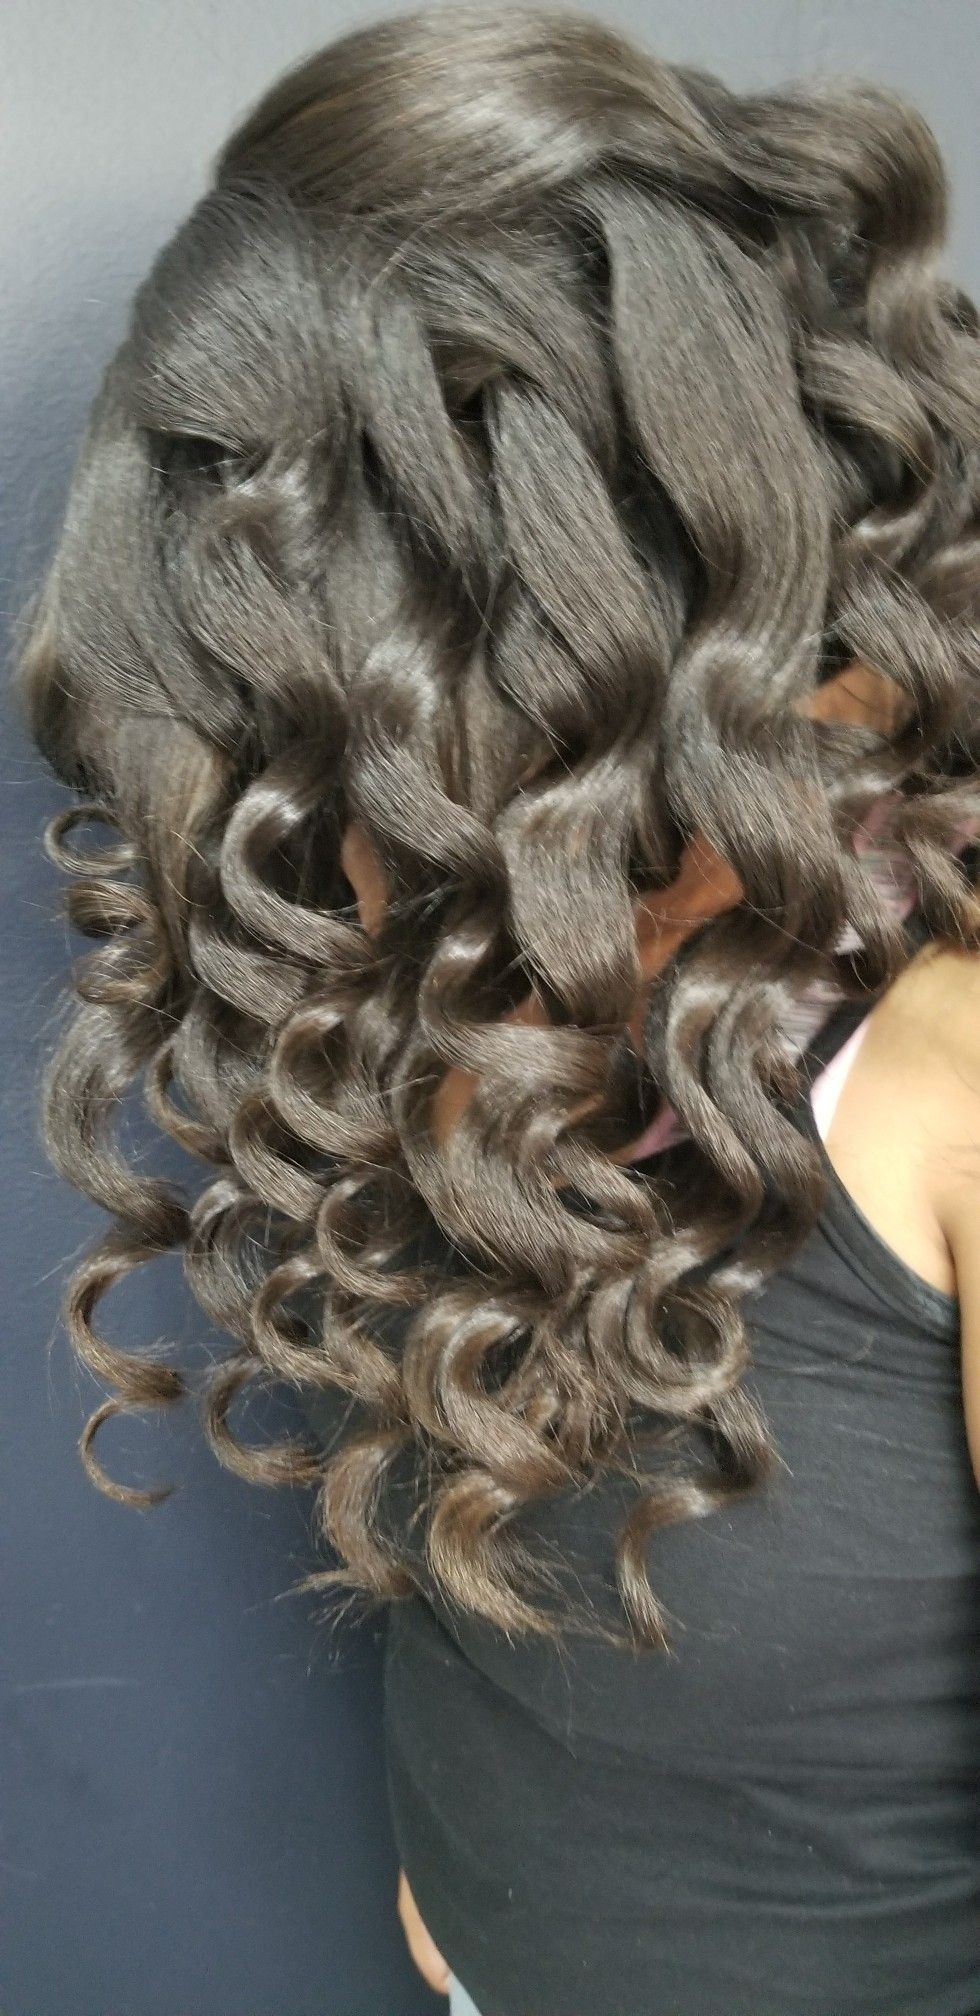 Beautiful Hair Begins With The Wright Hair Products Sold At Rdt Hair Salon Beautiful Hair Hair Salon Hair Styles